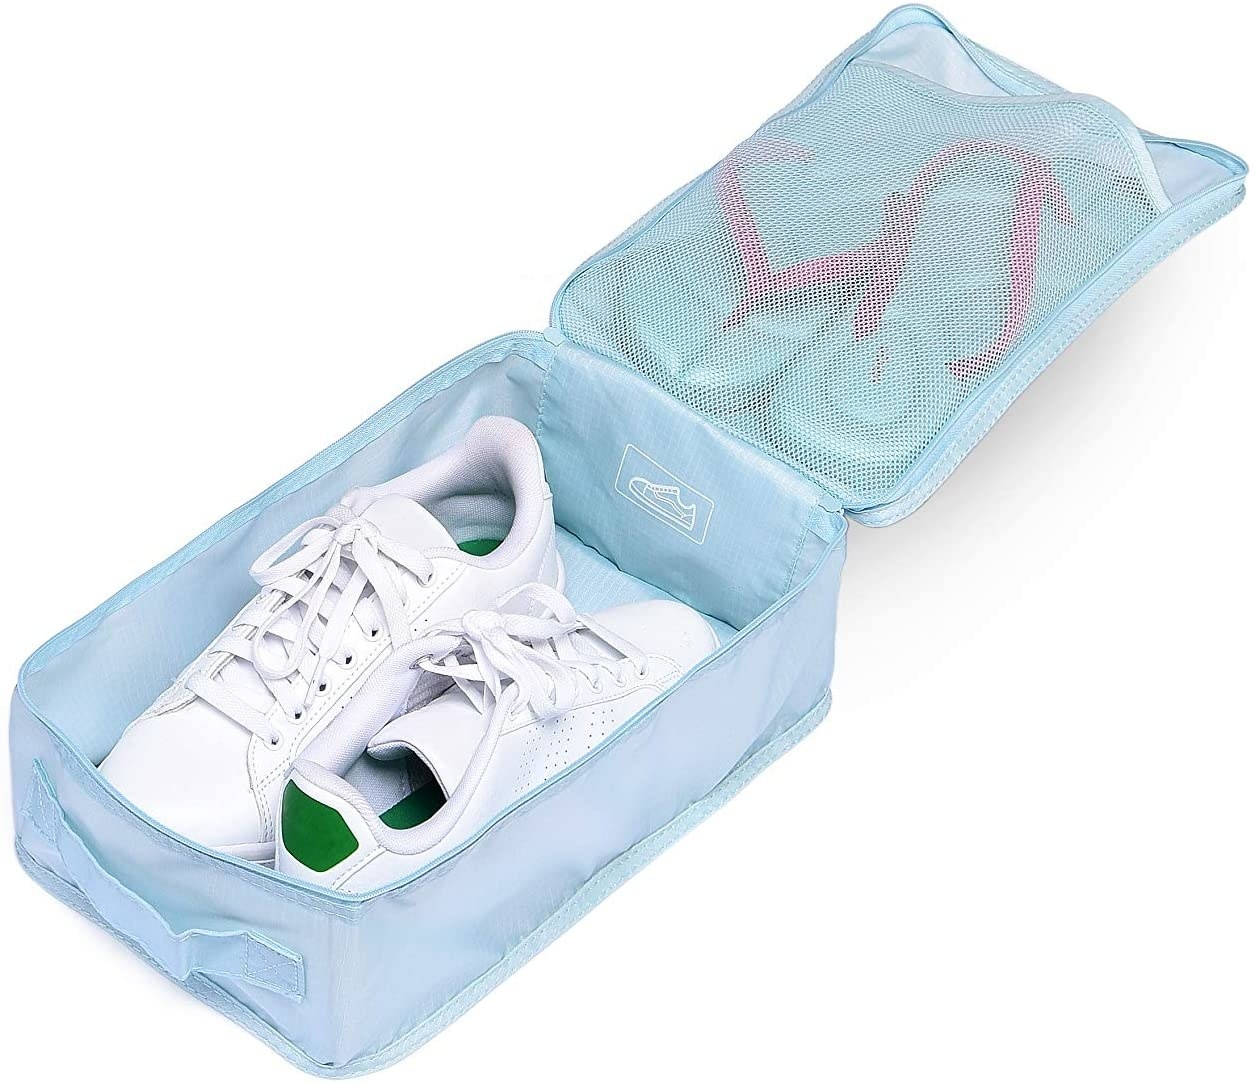 The light blue rectangular shoe bag with a pair of sneakers in the main compartment and sandals in a mesh top one